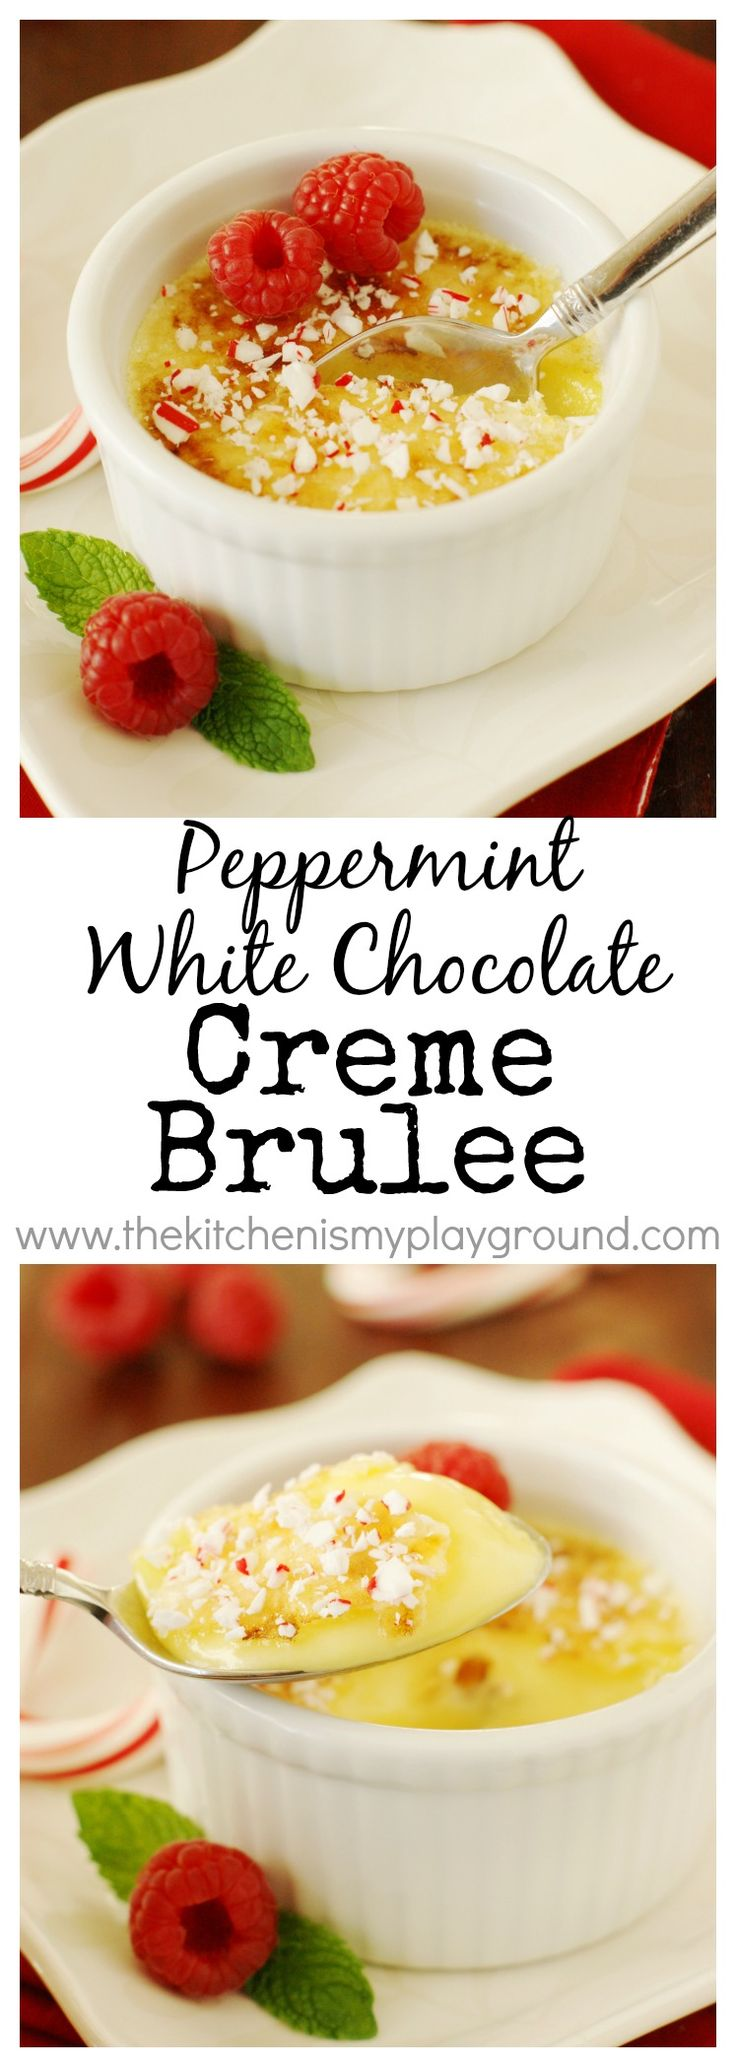 Peppermint-White Chocolate Creme Brulee ~ a beautifully festive peppermint dessert for the Christmas season! www.thekitchenism...